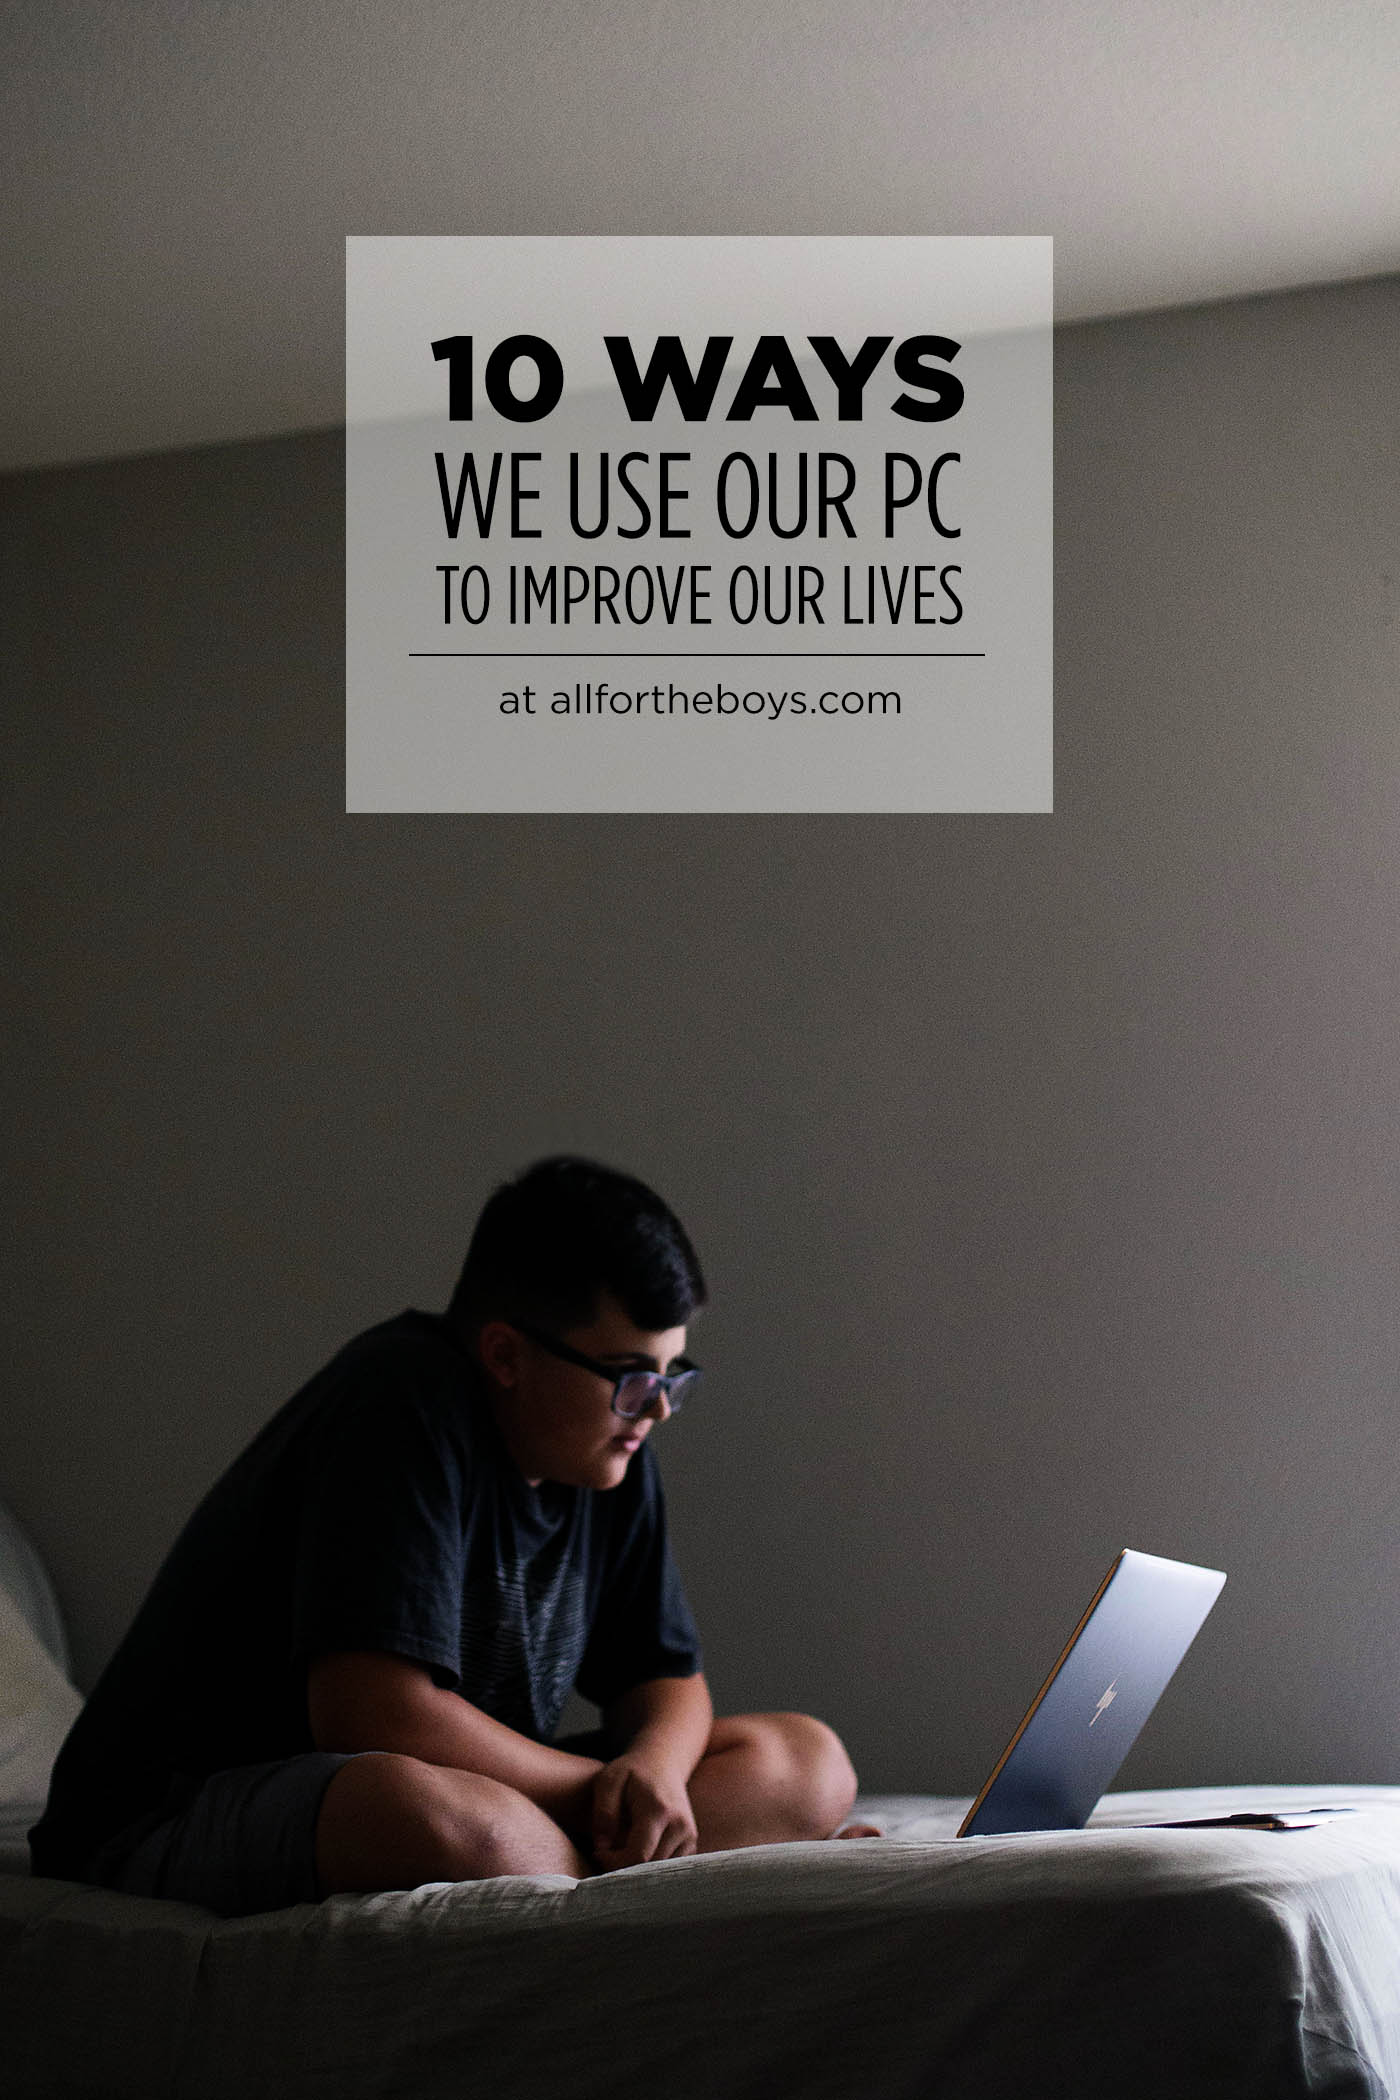 10 ways we use our PC to improve our lives and why upgrading to the new 8th Gen Intel® Core™ processor is totally worth it